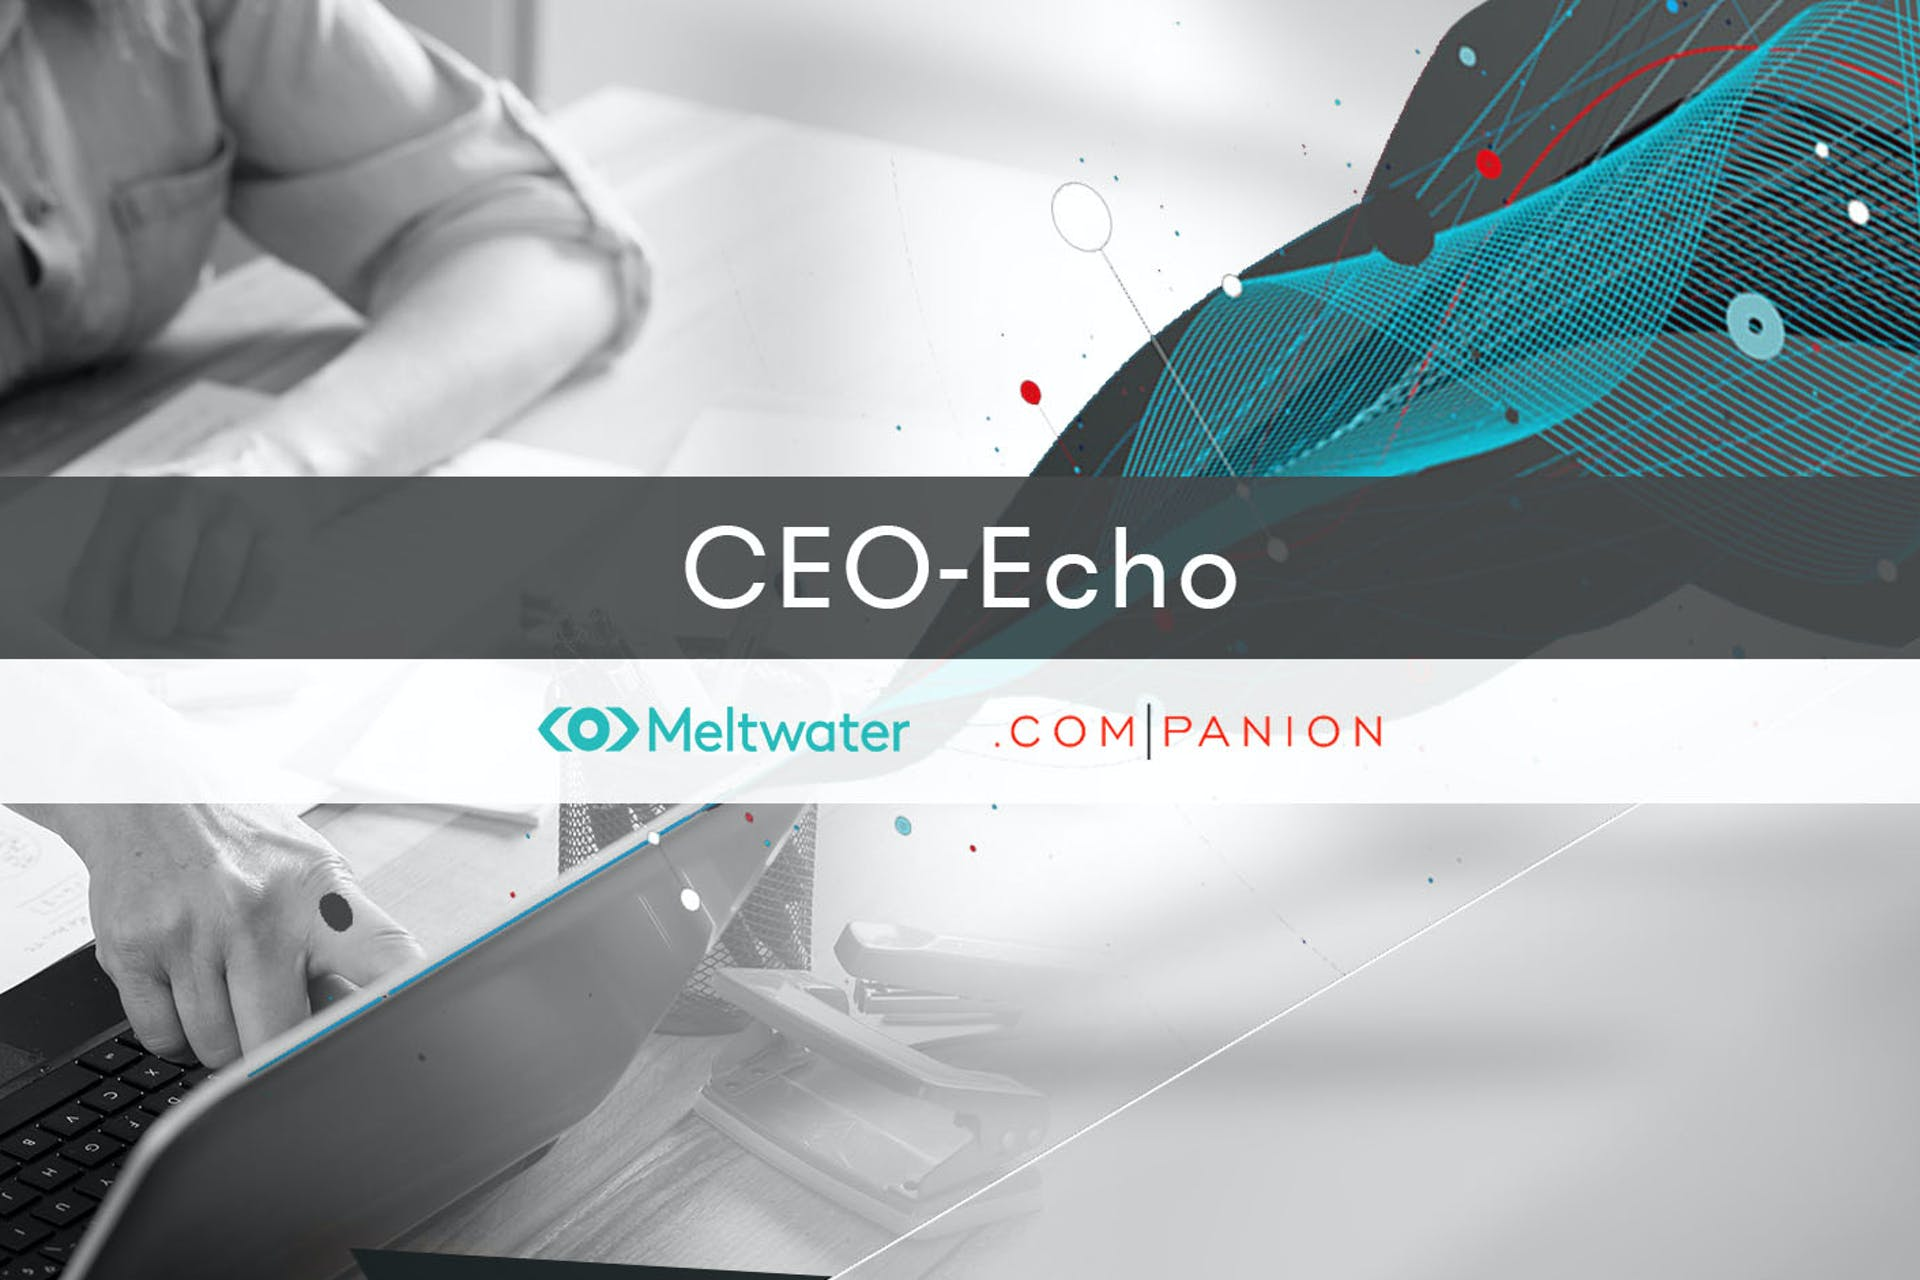 Meltwater companion CEO-Echo Banner